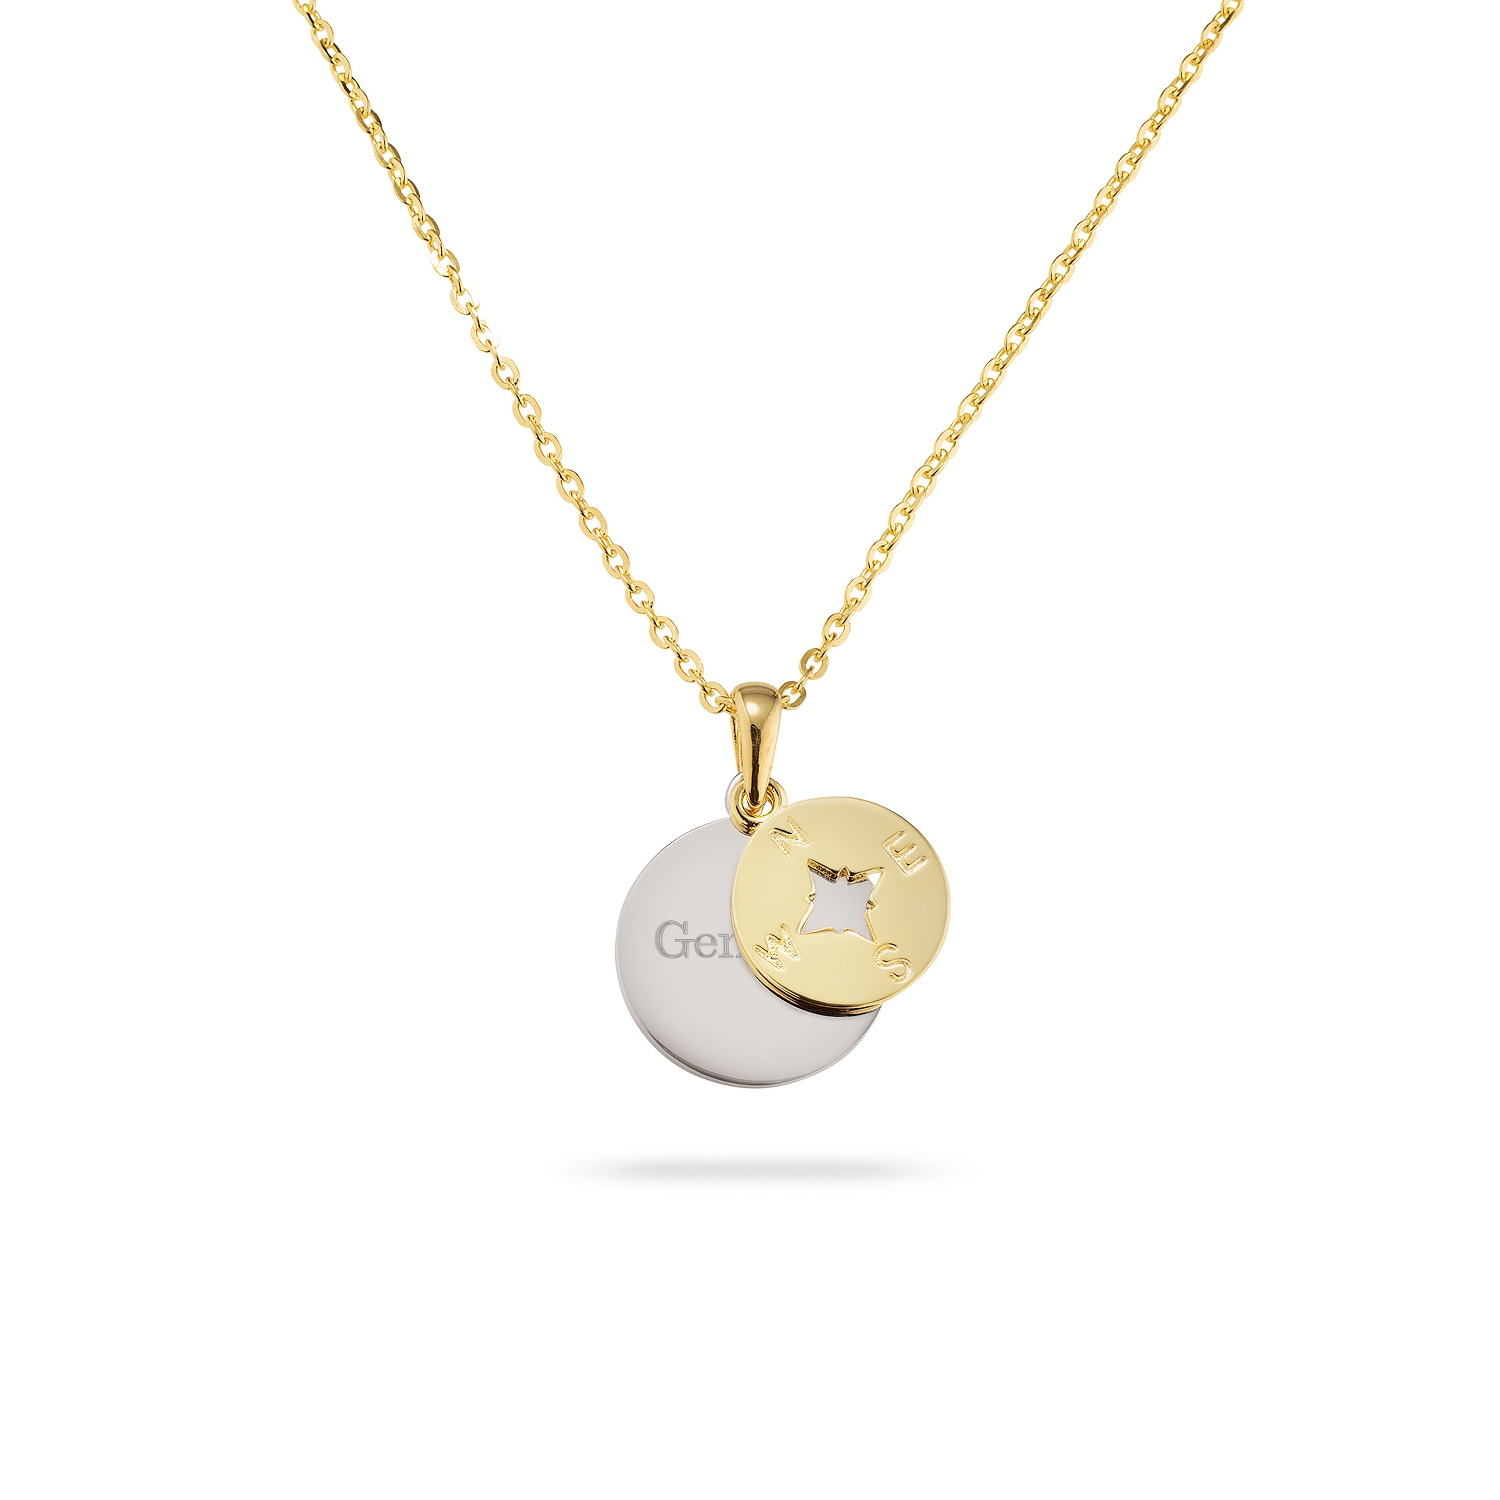 luna roam compass essentials la necklace rose chain products gold born to jewellery charm